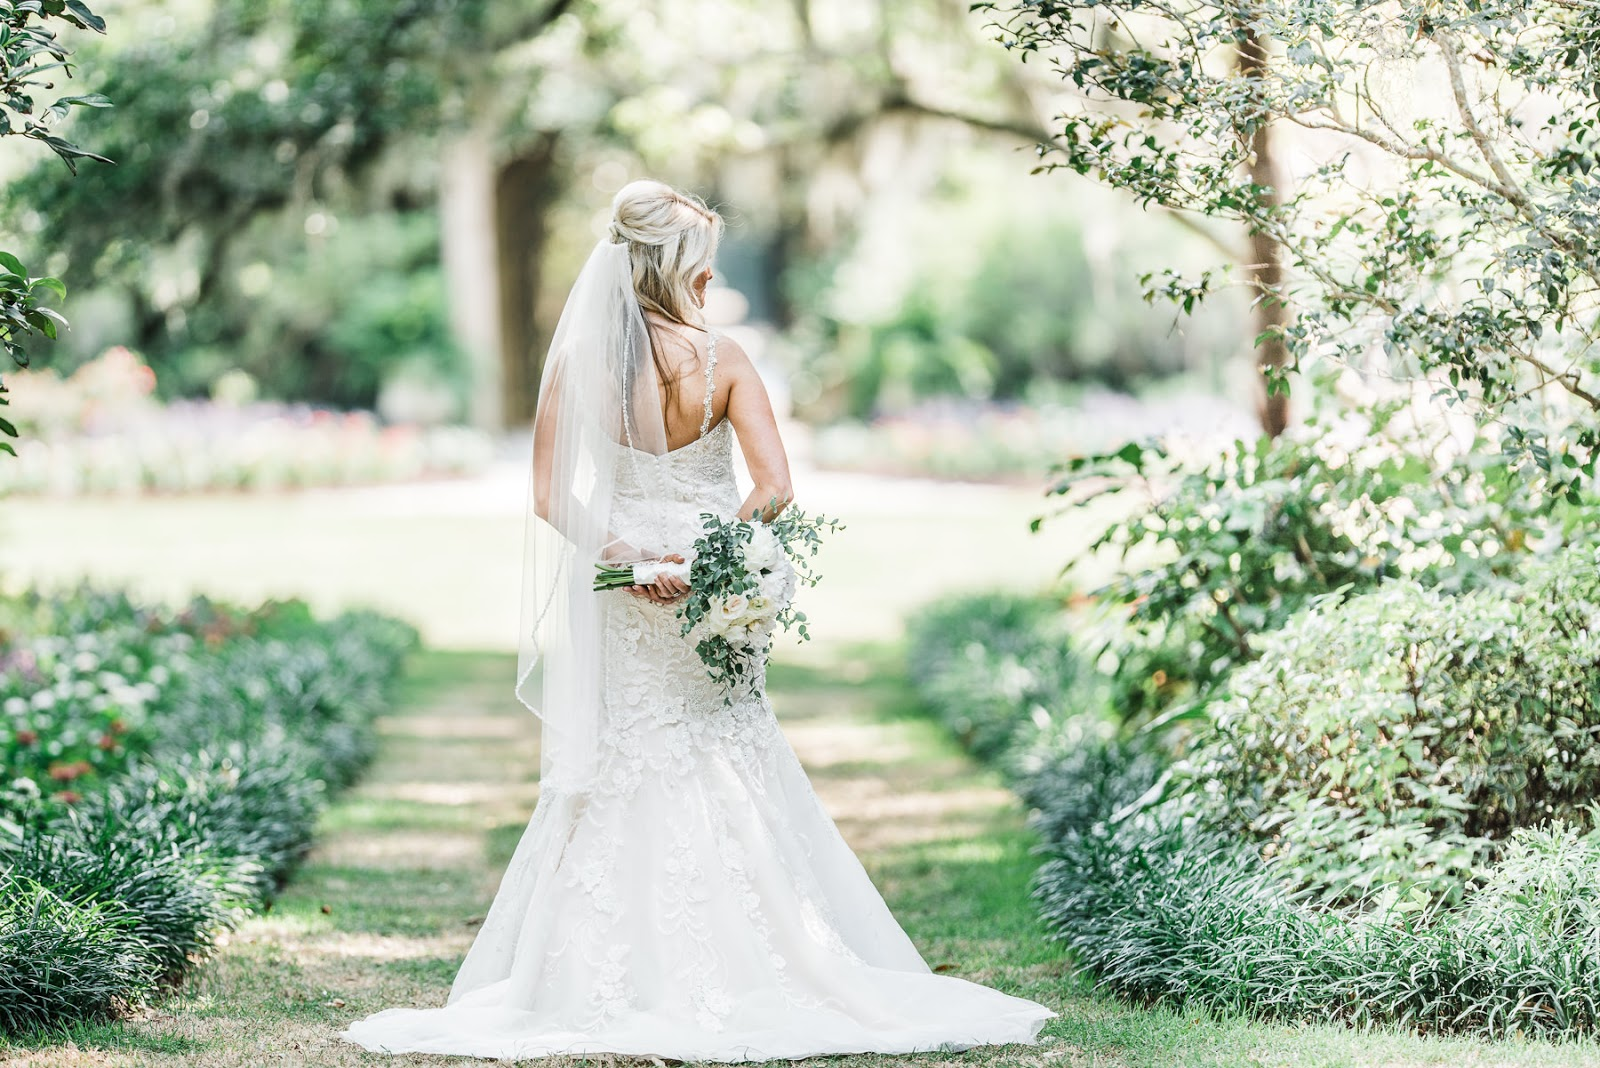 Image of bride in her wedding dress on the bridal walk in Airlie Gardens - wedding bouquet - garden wedding photography - Wilmington NC wedding photographers